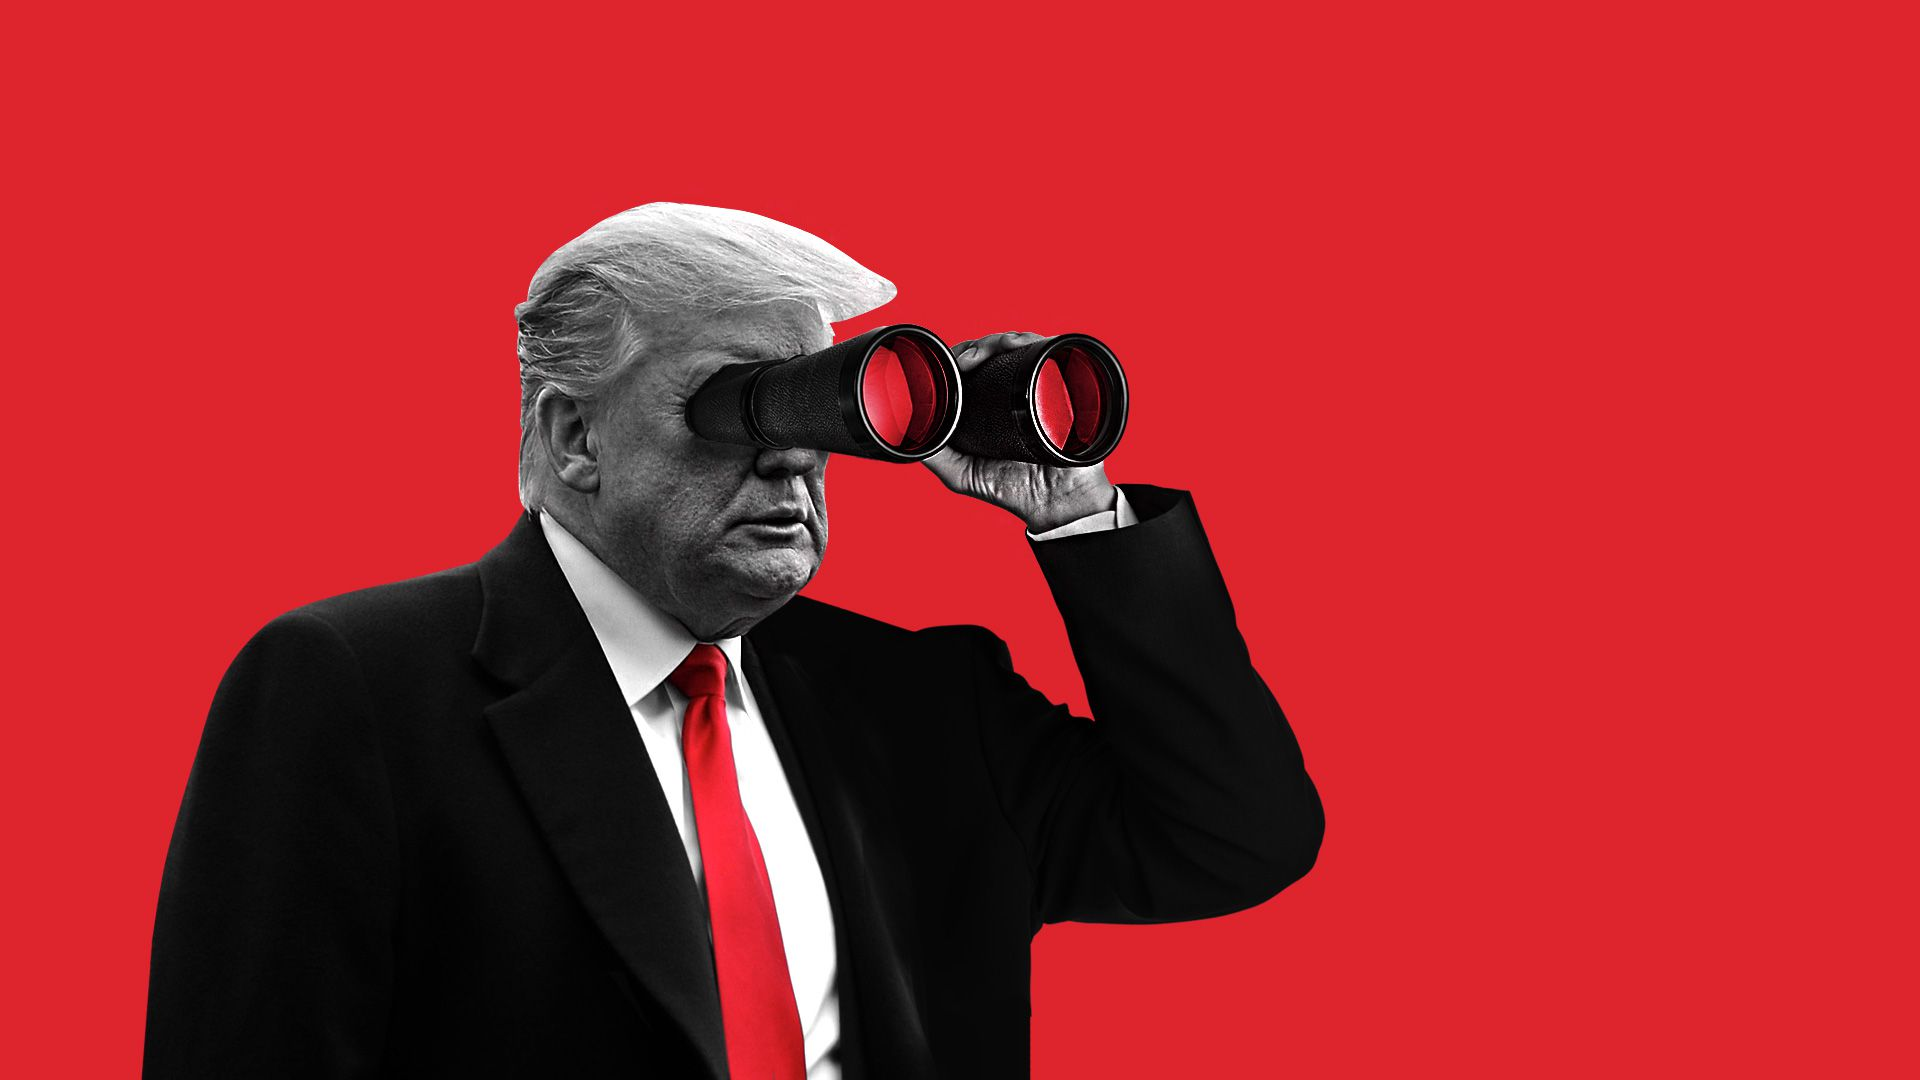 Trump peering into the distance with binoculars